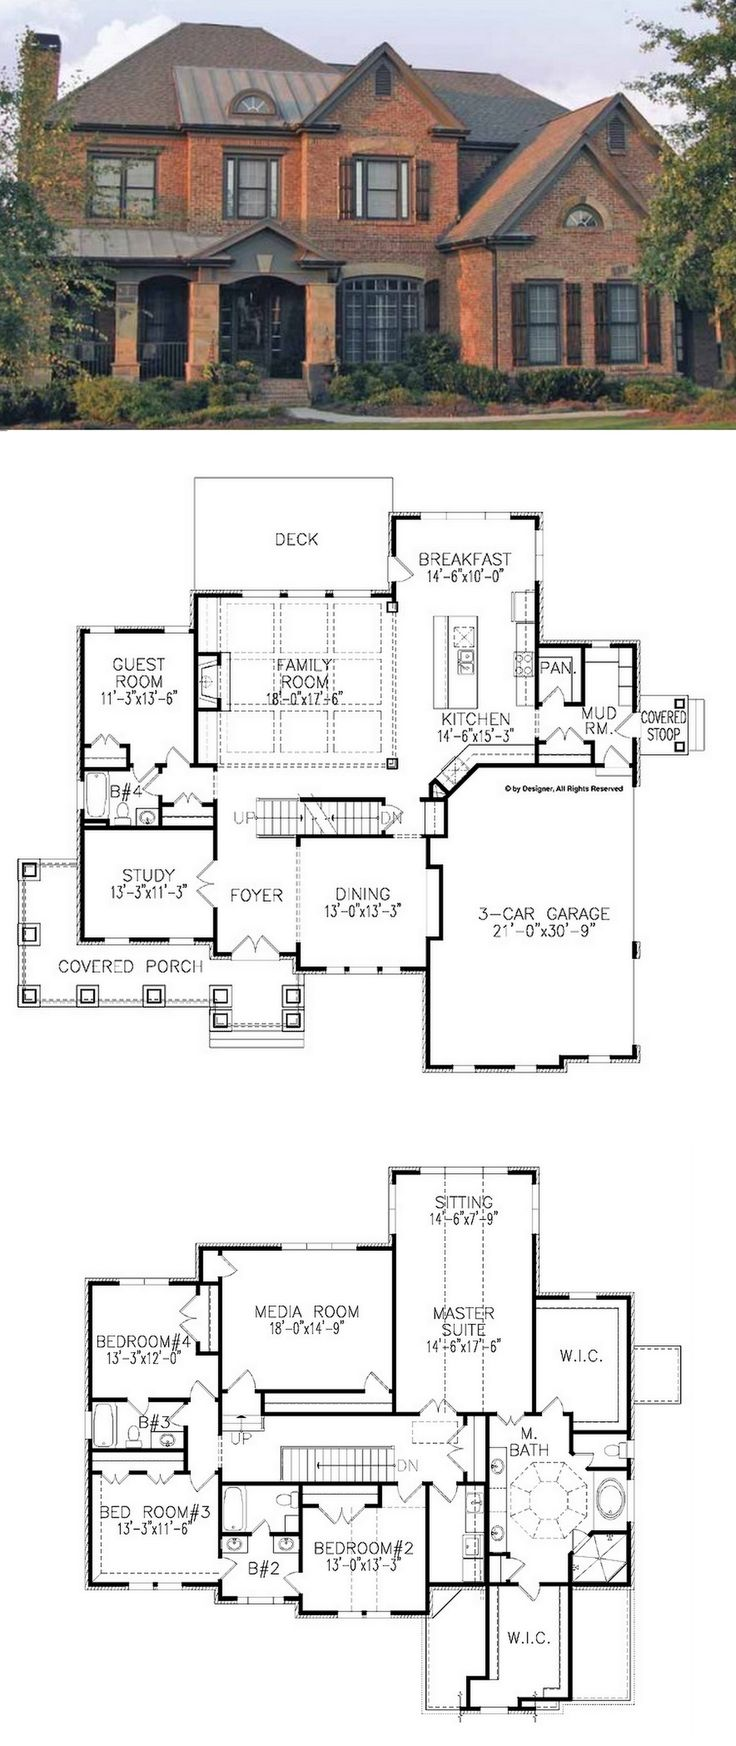 17 best ideas about floor plans on pinterest home plans house floor plans and house blueprints